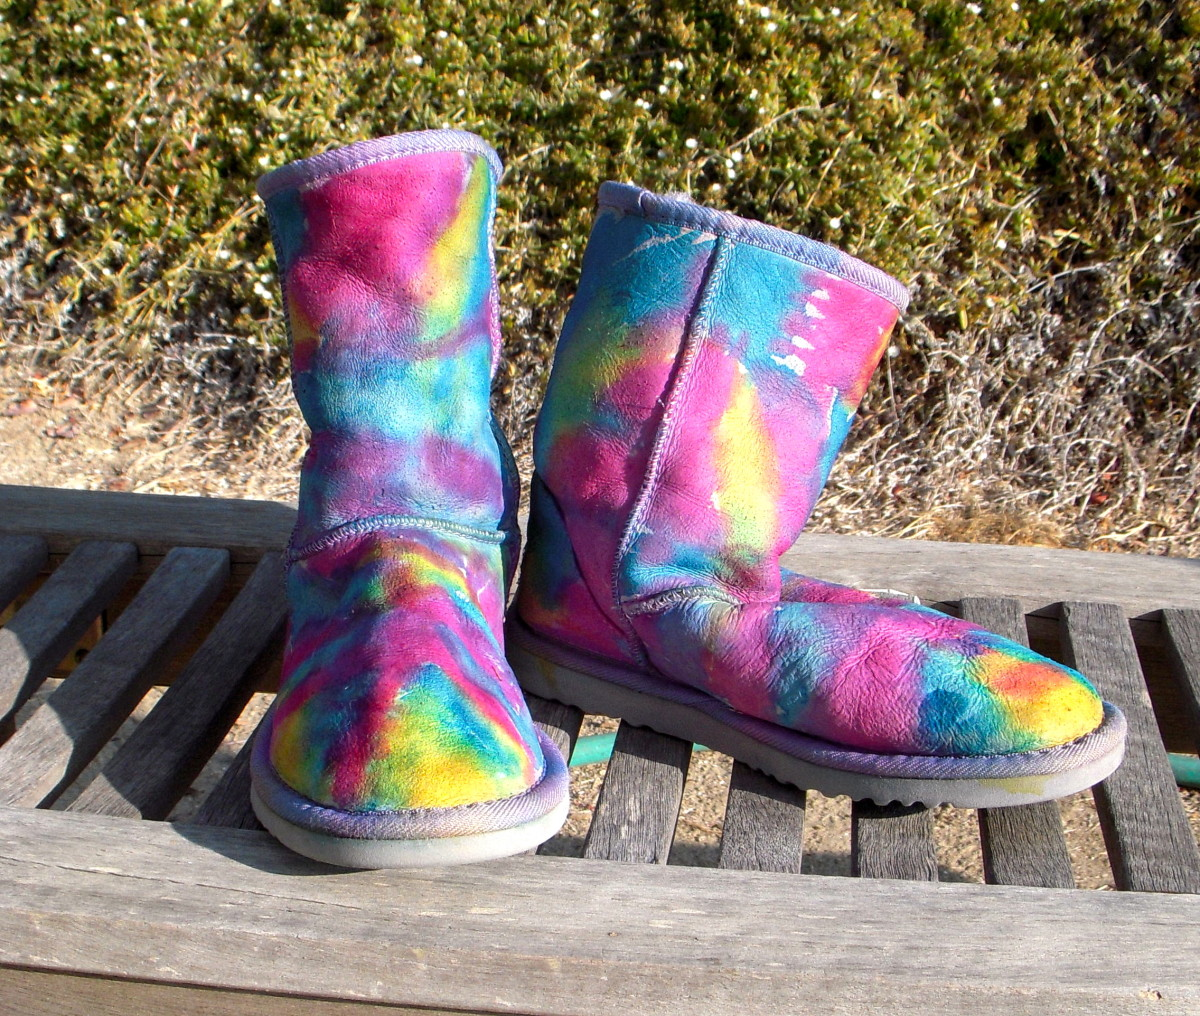 It takes several hours in the sun to dry wet Uggs. They can get moldy if you don't dry them quickly enough! Try a fan, keep blotting with a towel to get out excess water.